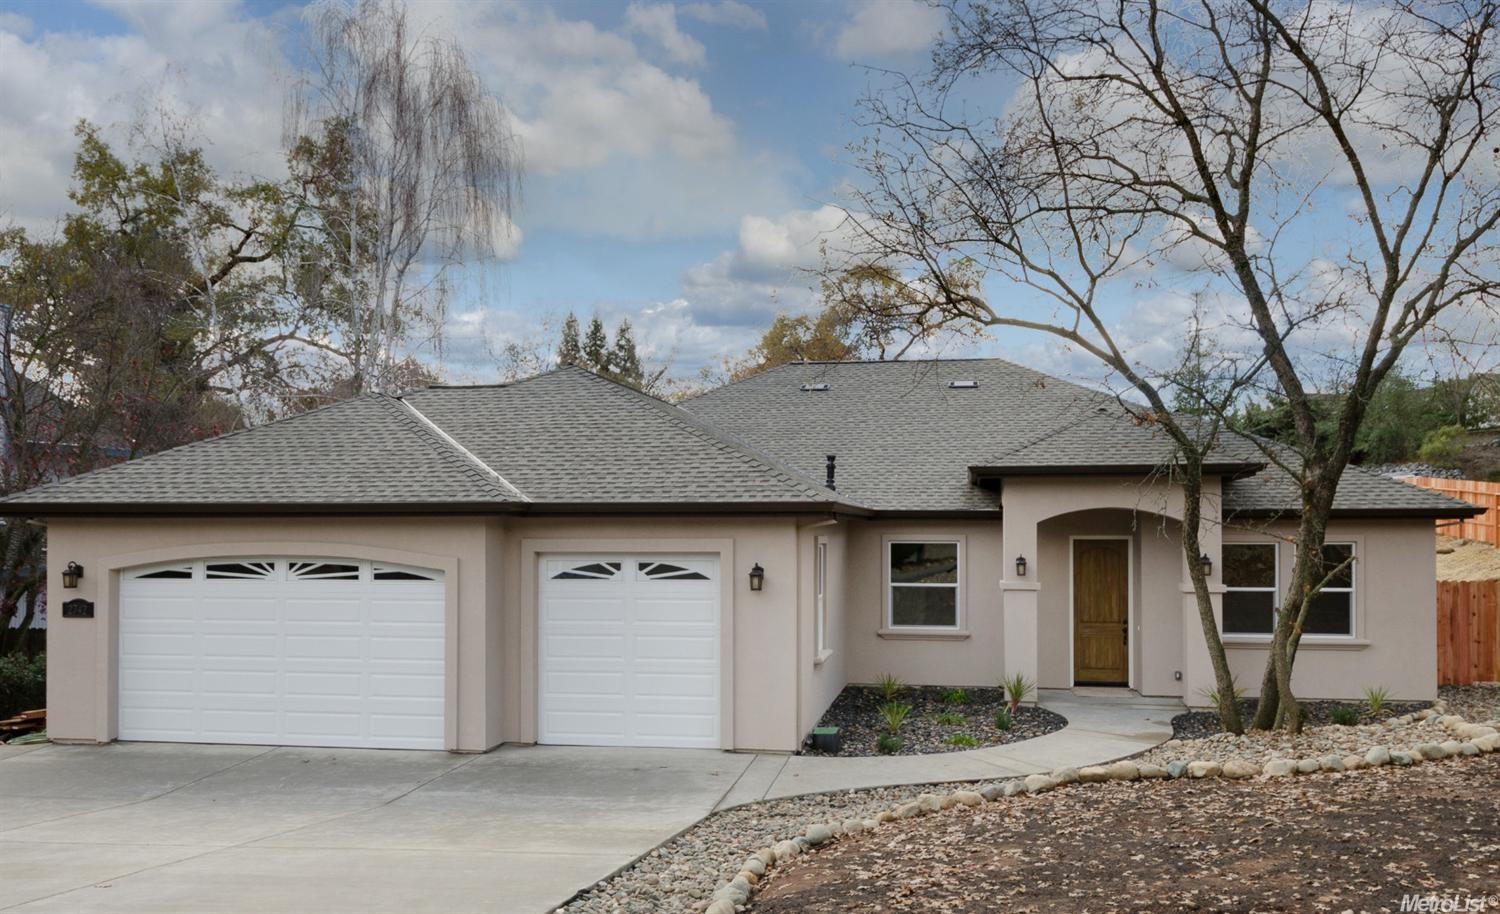 2742 Wentworth Rd, Cameron Park, CA 95682